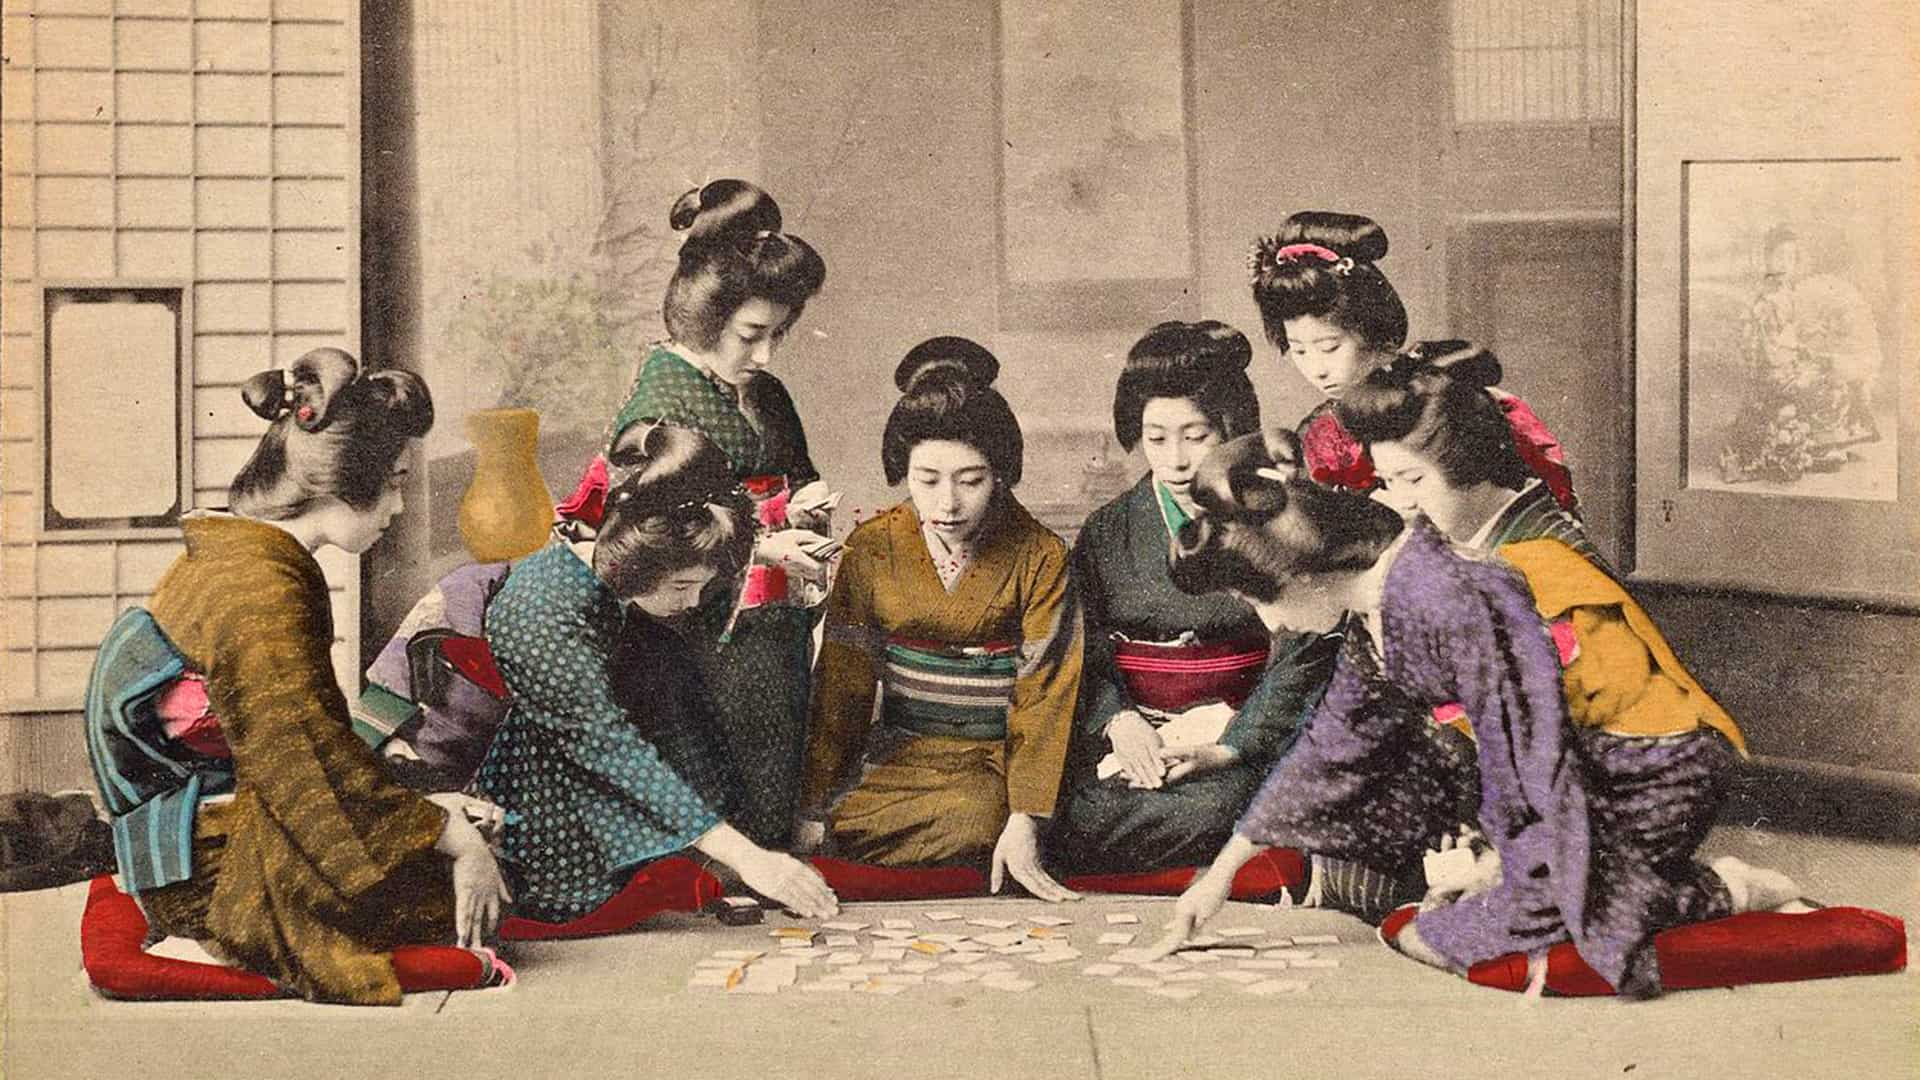 A literary analysis and a review of memoirs of a geisha